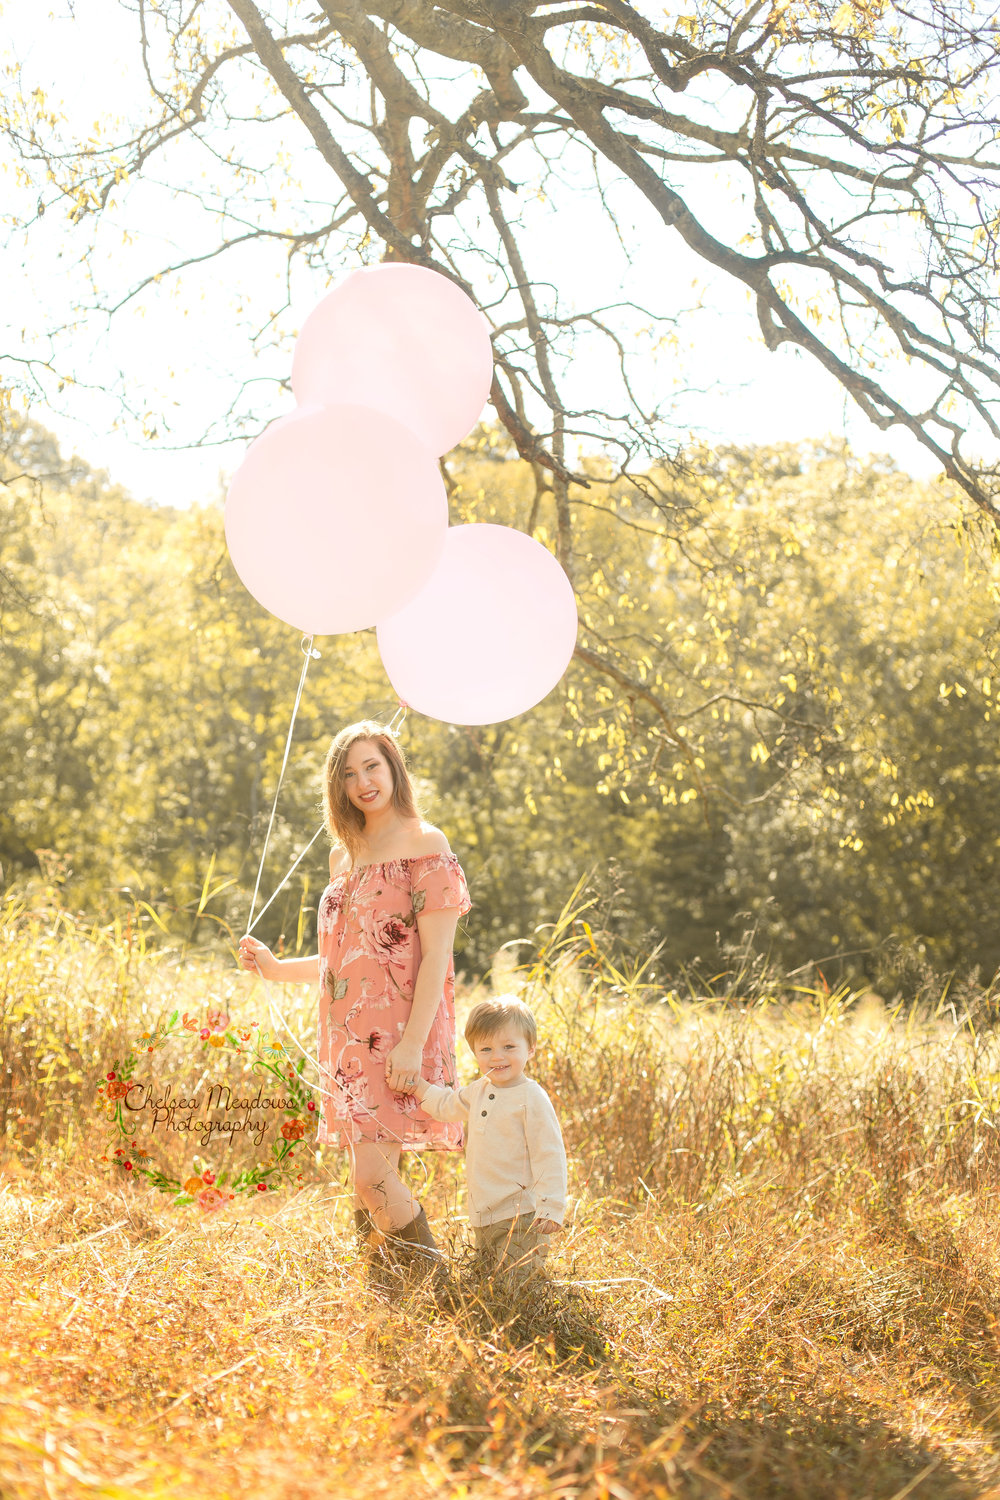 Gusty Gender Reveal - Nashville Newborn Photographer - Chelsea Meadows Photography (38).jpg